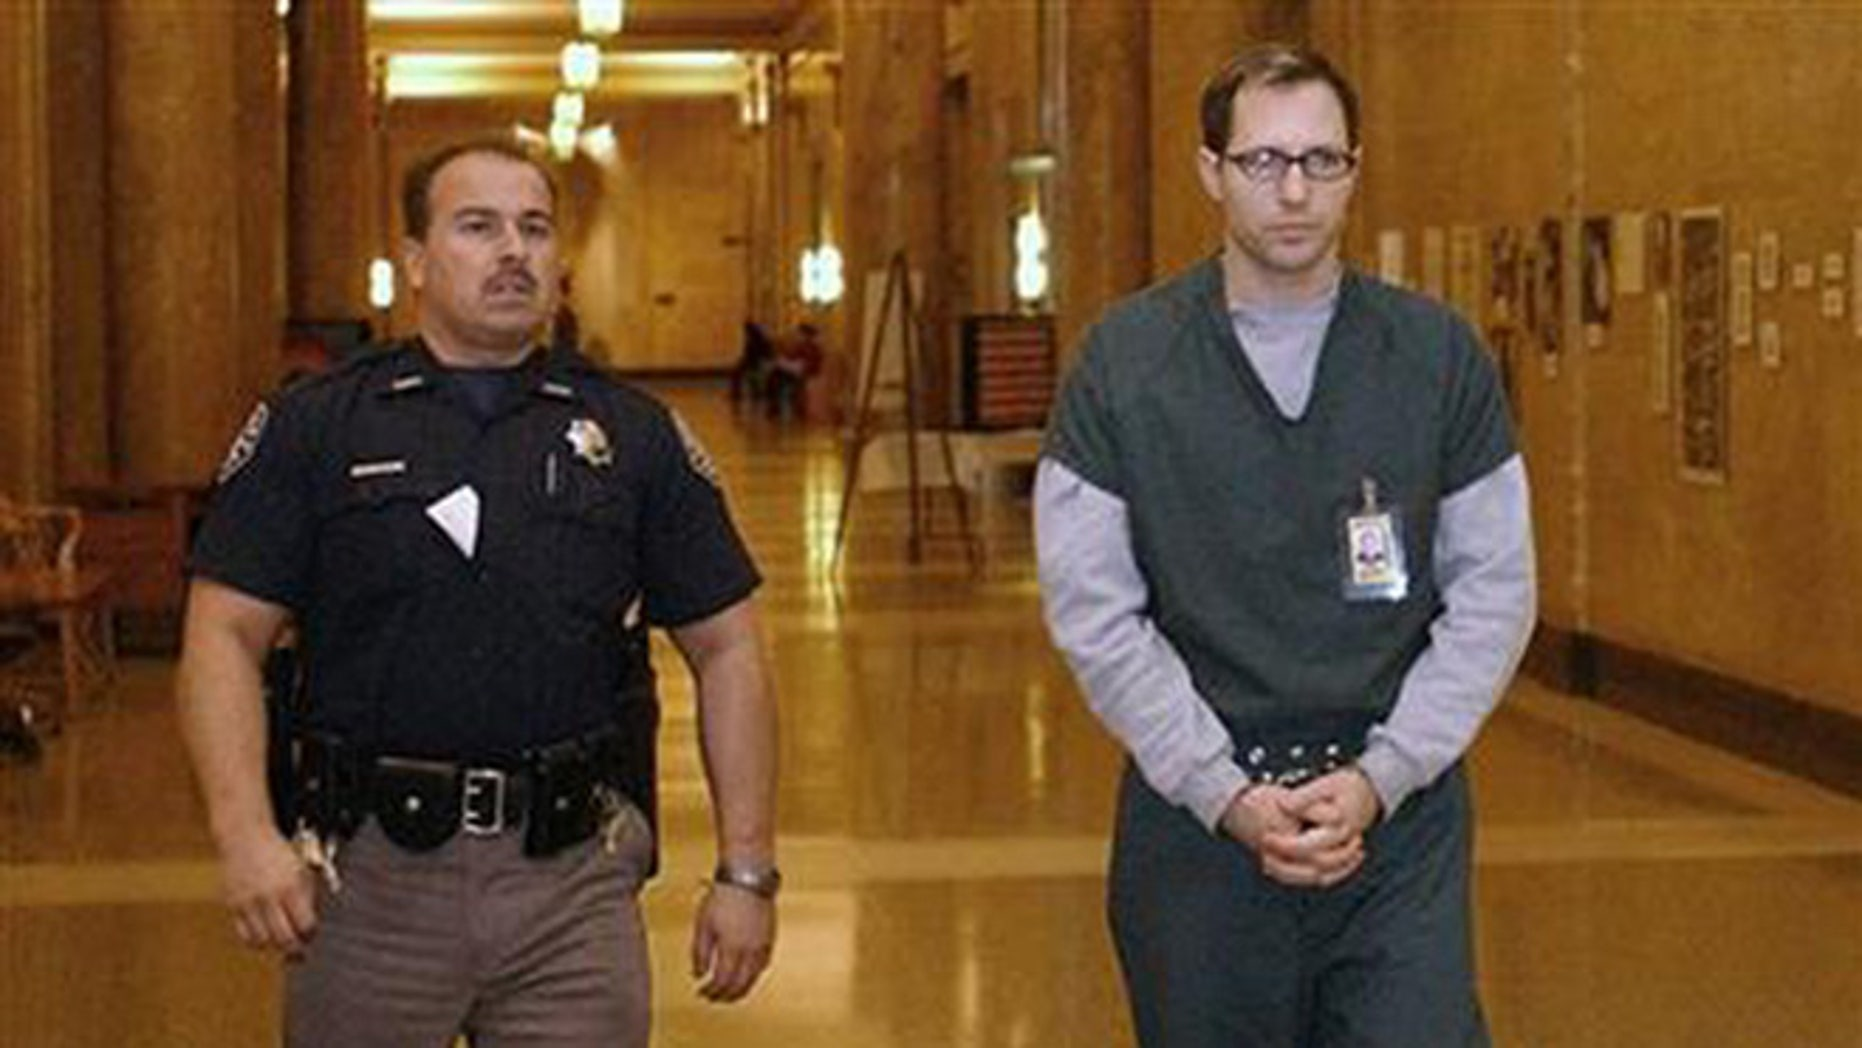 In this Feb. 21, 2002 file photo, Kurt Sonnenfeld, right, is led in handcuffs to a court for an appearance to face a first-degree murder charge in the death of his wife Nancy Sonnenfeld, in Denver, Colorado. On Dec. 11, 2104, Argentina's Supreme Court ruled that Sonnenfeld, who took refuge in the South American country in 2003, can be extradited to the U.S. to face charges that he killed his wife. Sonnenfeld had been a cameraman for the Federal Emergency Management Agency at the World Trade Center after the Sept. 11, 2001, terrorist attacks and claimed he had video footage indicating the government knew the attacks would happen. He claimed that his wife, who was found dead in their home on Jan. 1, 2002, had killed herself and that prosecutors framed him for her death to silence him, allegations that Denver's district attorney's office has denied. (AP Photo/The Denver Post, John Prieto, File)